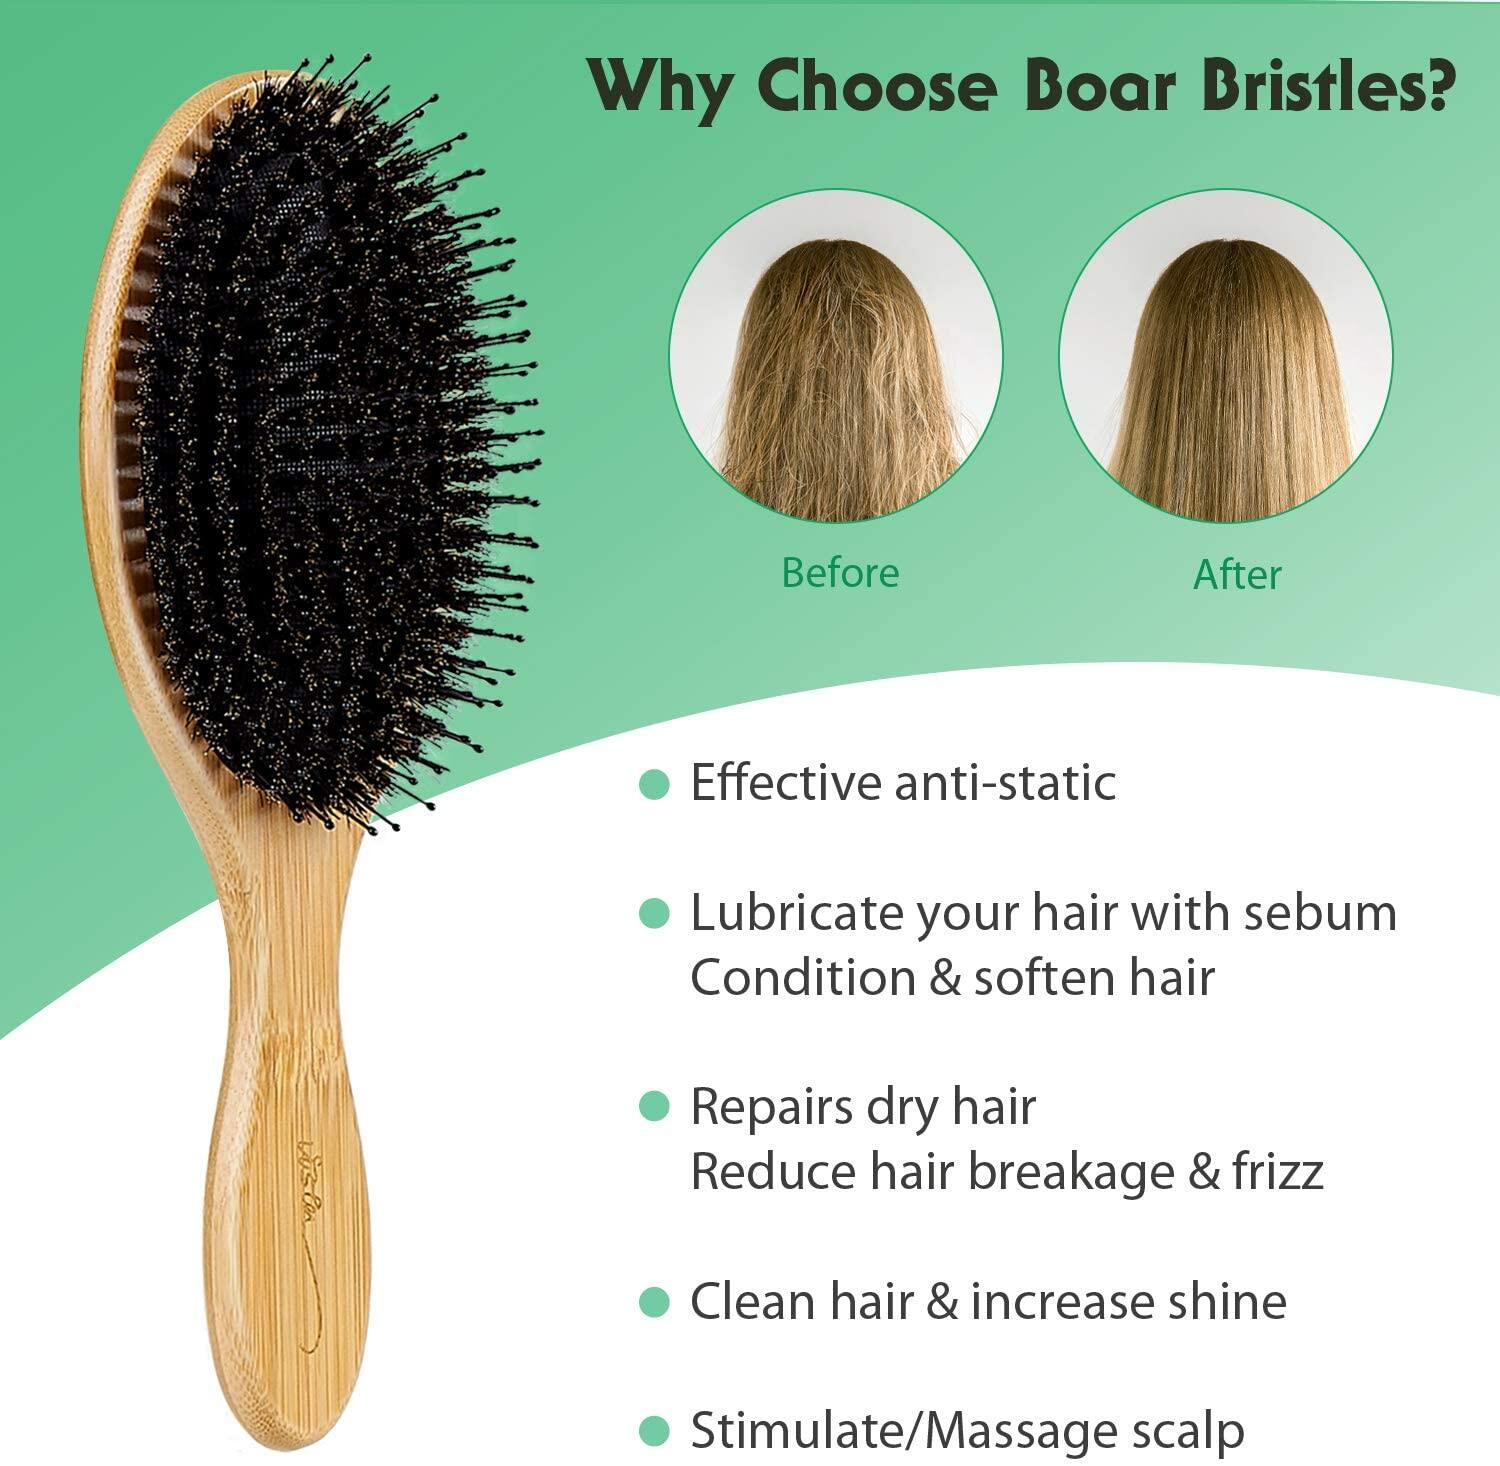 Boar Bristle Hair Brush, Natural Bamboo Paddle Hairbrush with Tail Comb for Long Thick Curly Wavy Dry or Damaged Hair Round Hair Brush Adds Shine and Makes Hair Smooth Comb Set for Men, Women, Kids Boar Bristle Hair Brush Natural Bamboo Paddle Hairbrush with Tail Comb for Long Thick Curly Wavy Dry or Damaged Hair Round Hair Brush Adds Shine and Makes Hair Smooth Comb Set for Men, Women, Kids Hair Brush